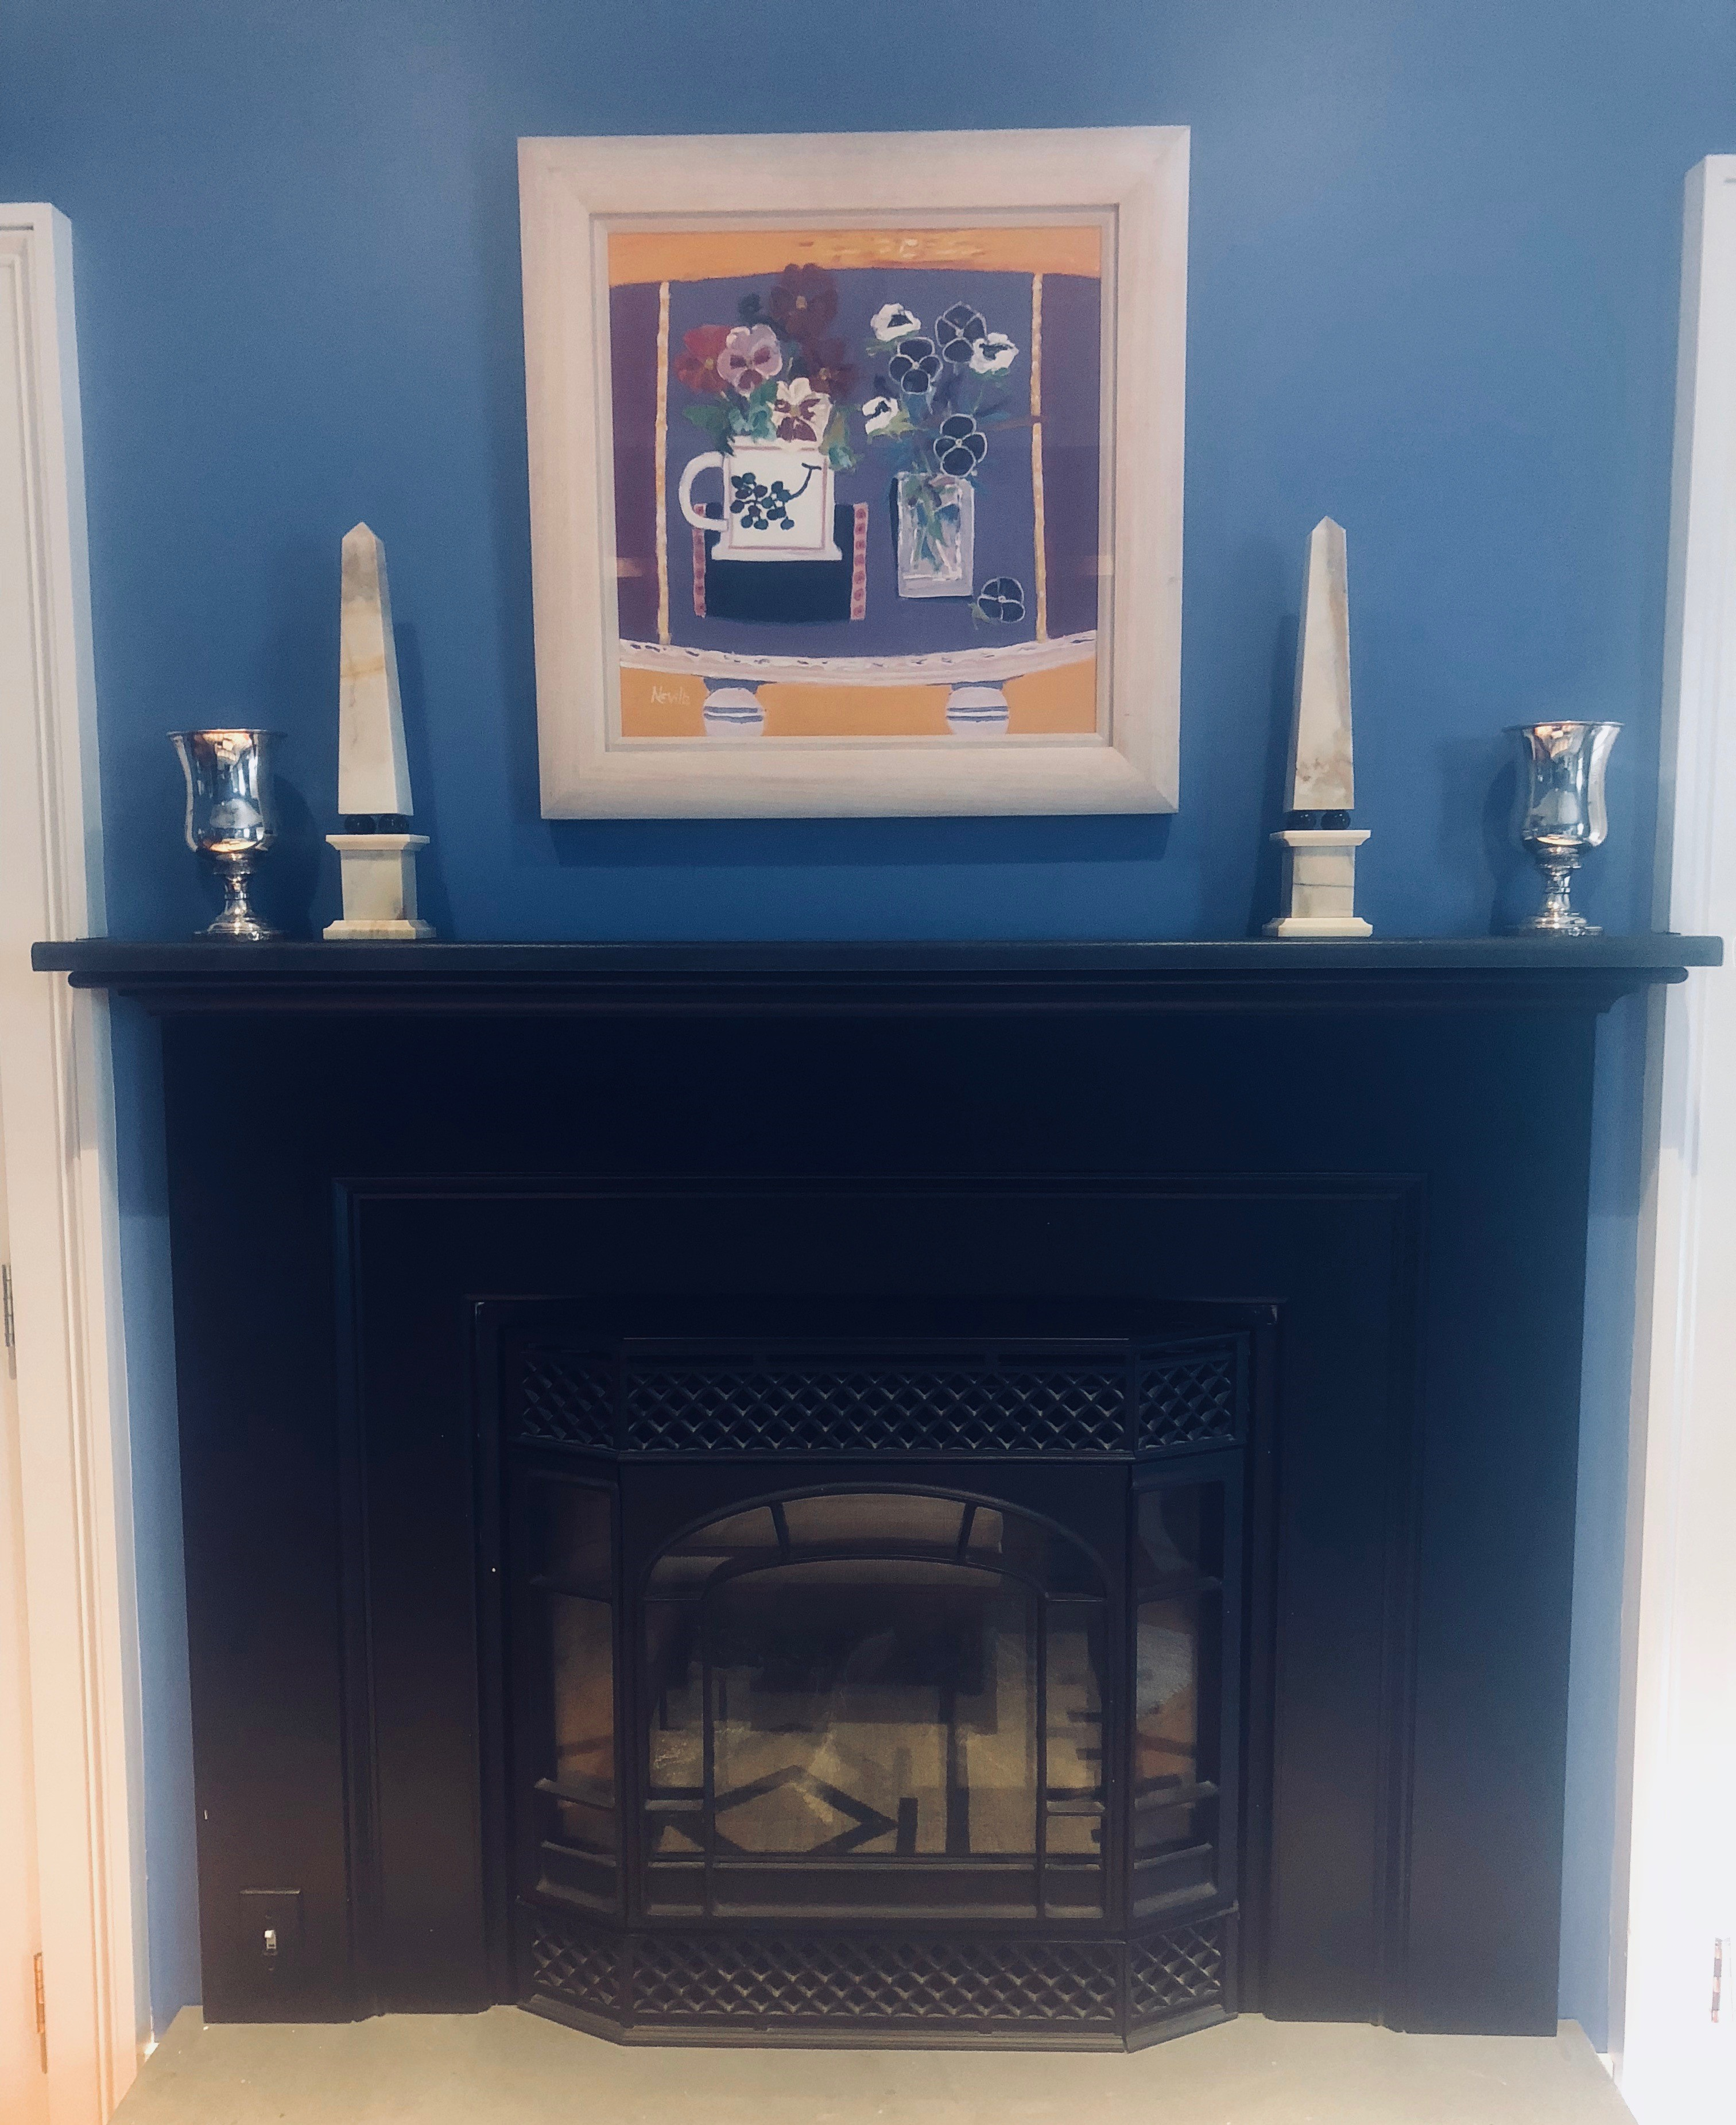 painting above fireplace with pair of obelisks